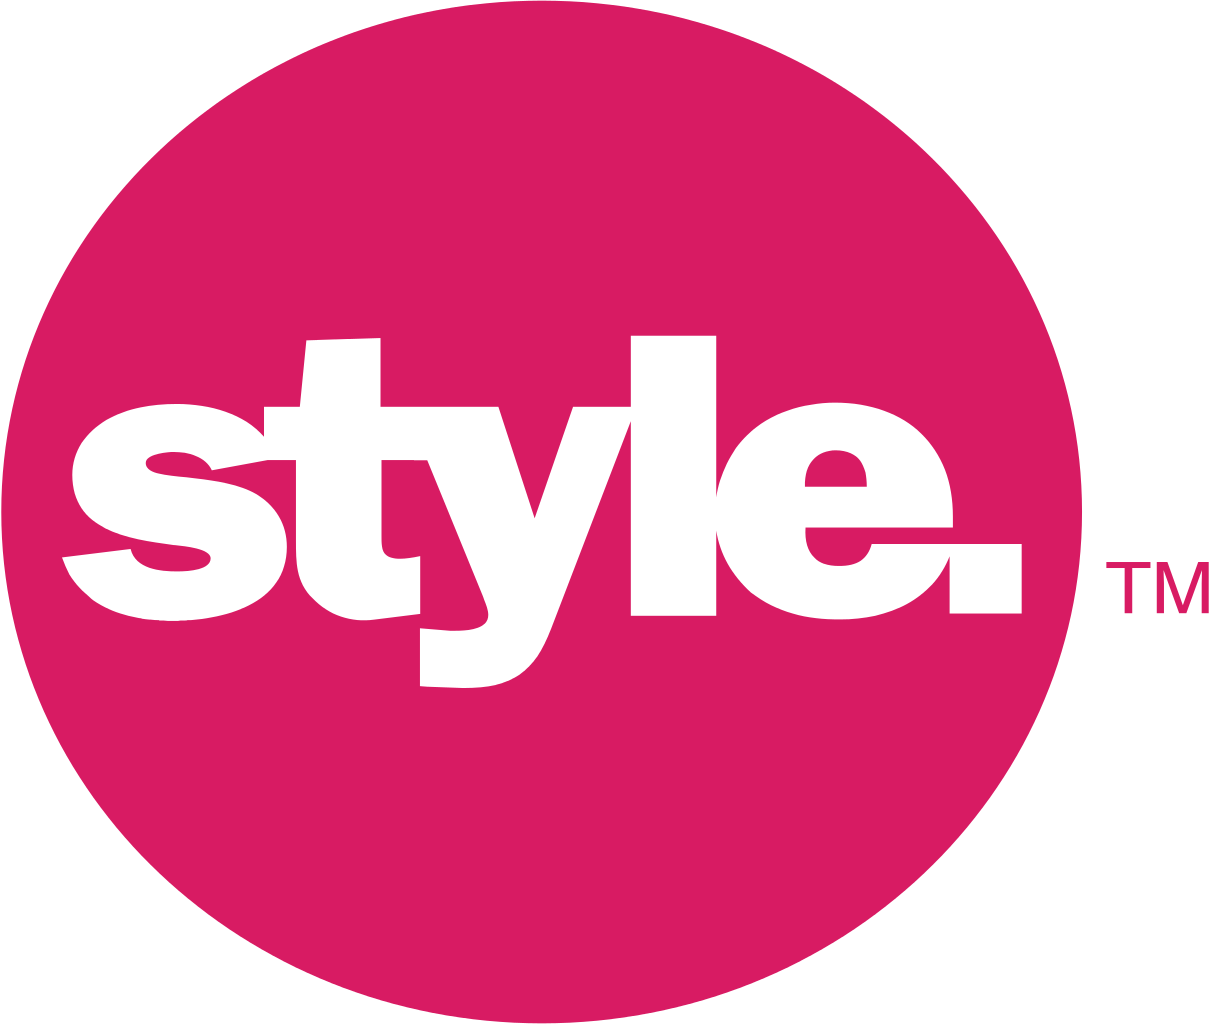 Style_Network_logo.svg.png